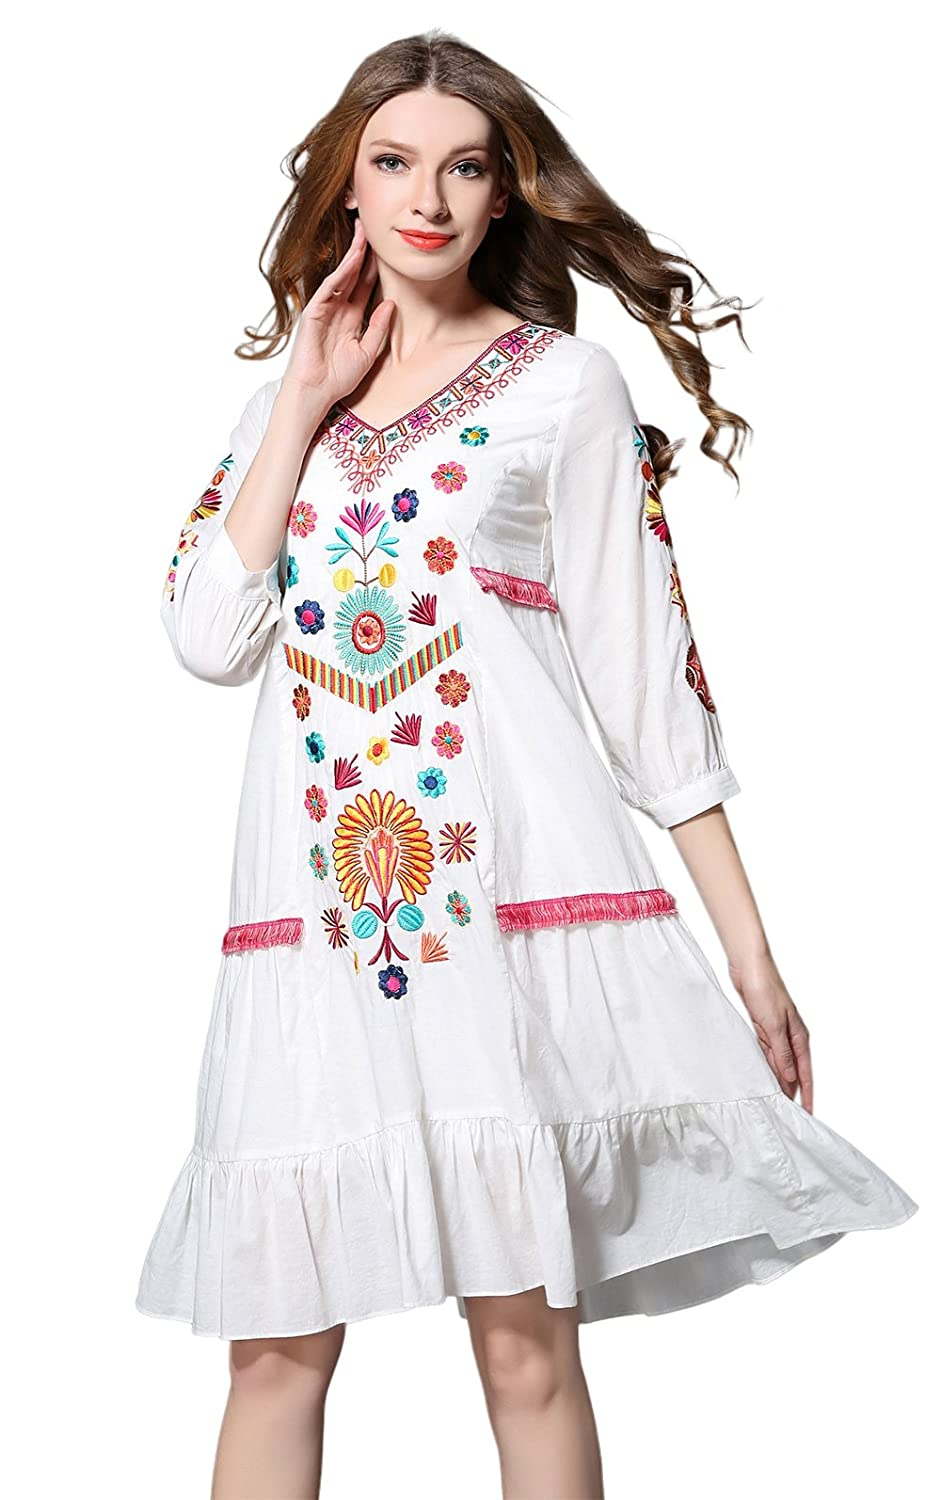 Shineflow Womens Casual 3//4 Sleeve Floral Embroidered Mexican Peasant Dressy Tops Blouses Shirt Dress Tunic /…